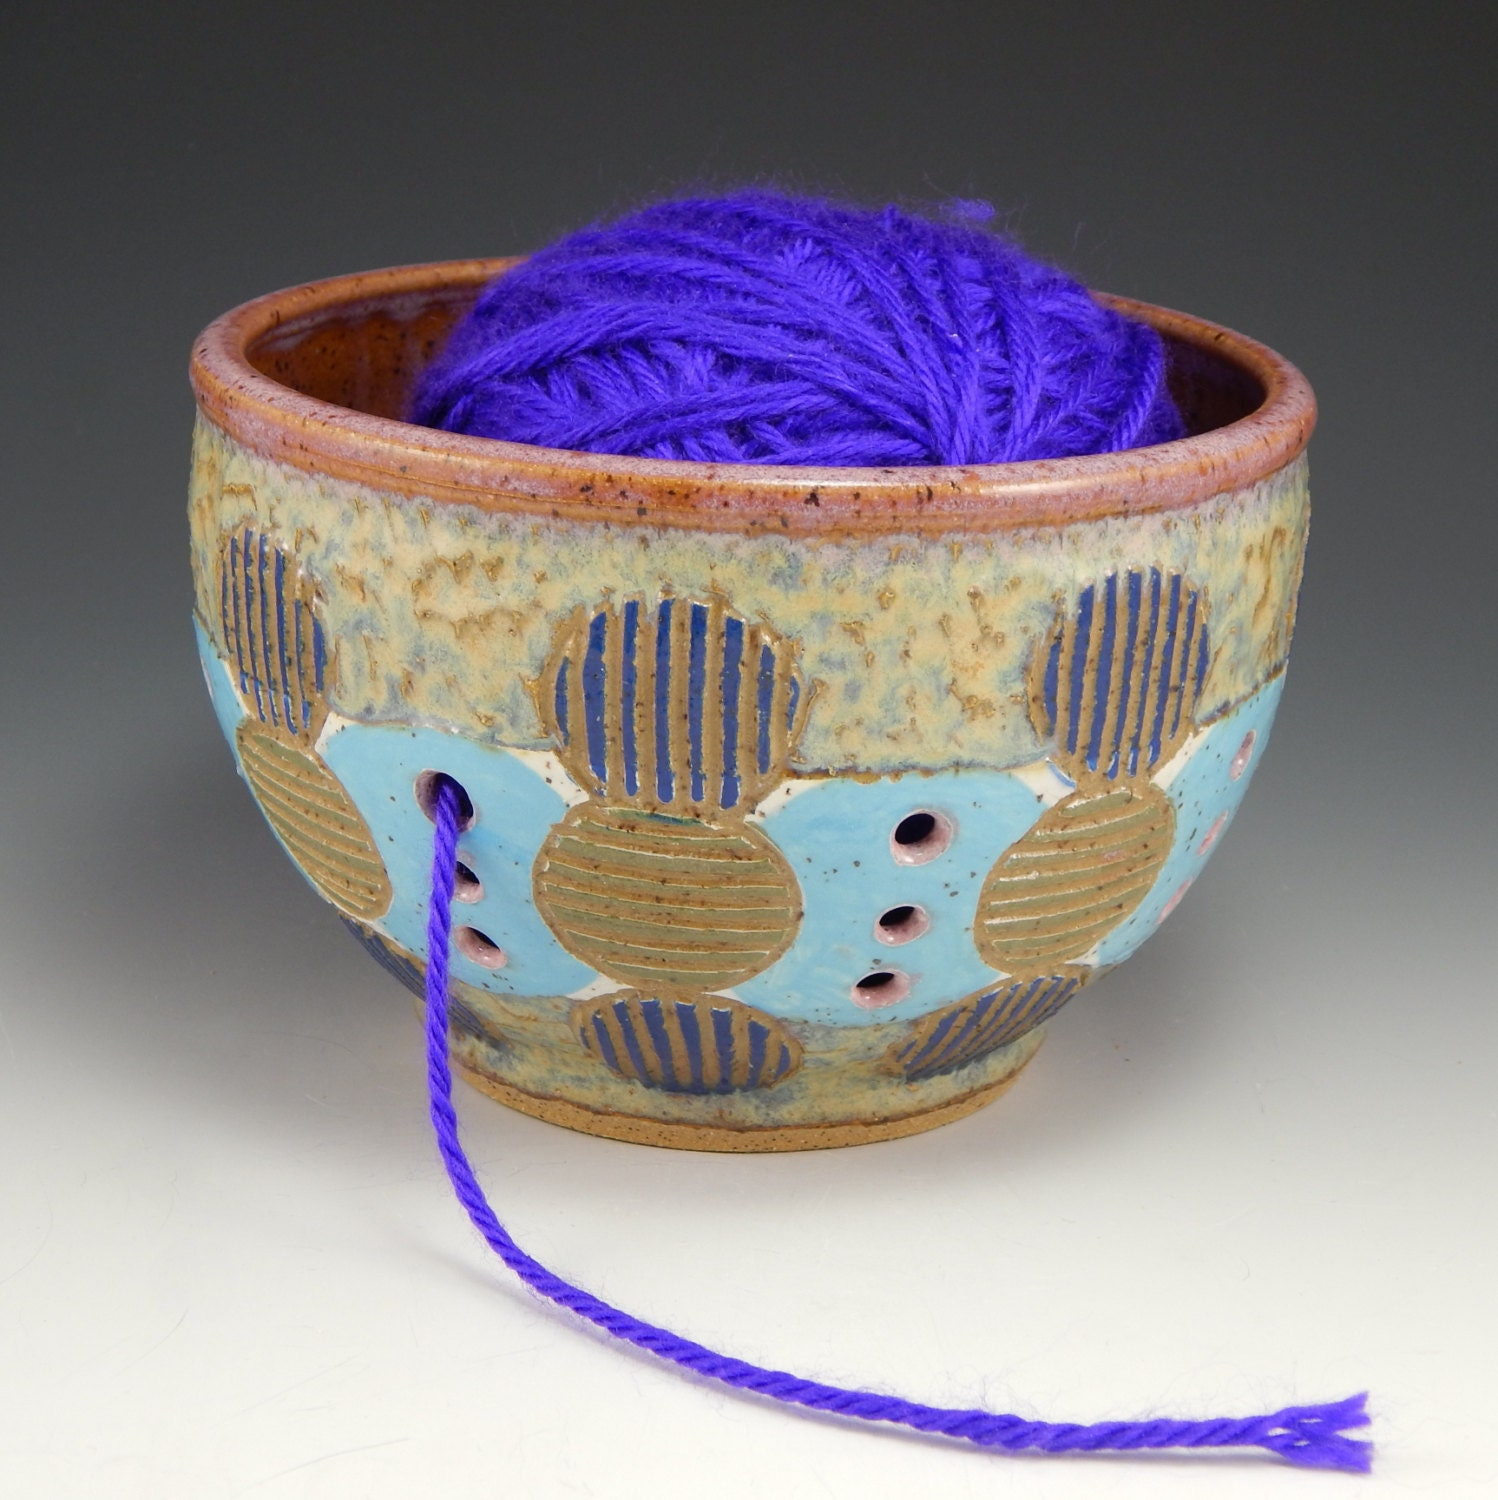 Crochet Yarn Bowl : ceramic yarn bowl knitting bowl crochet bowl by firenfluxhandmade